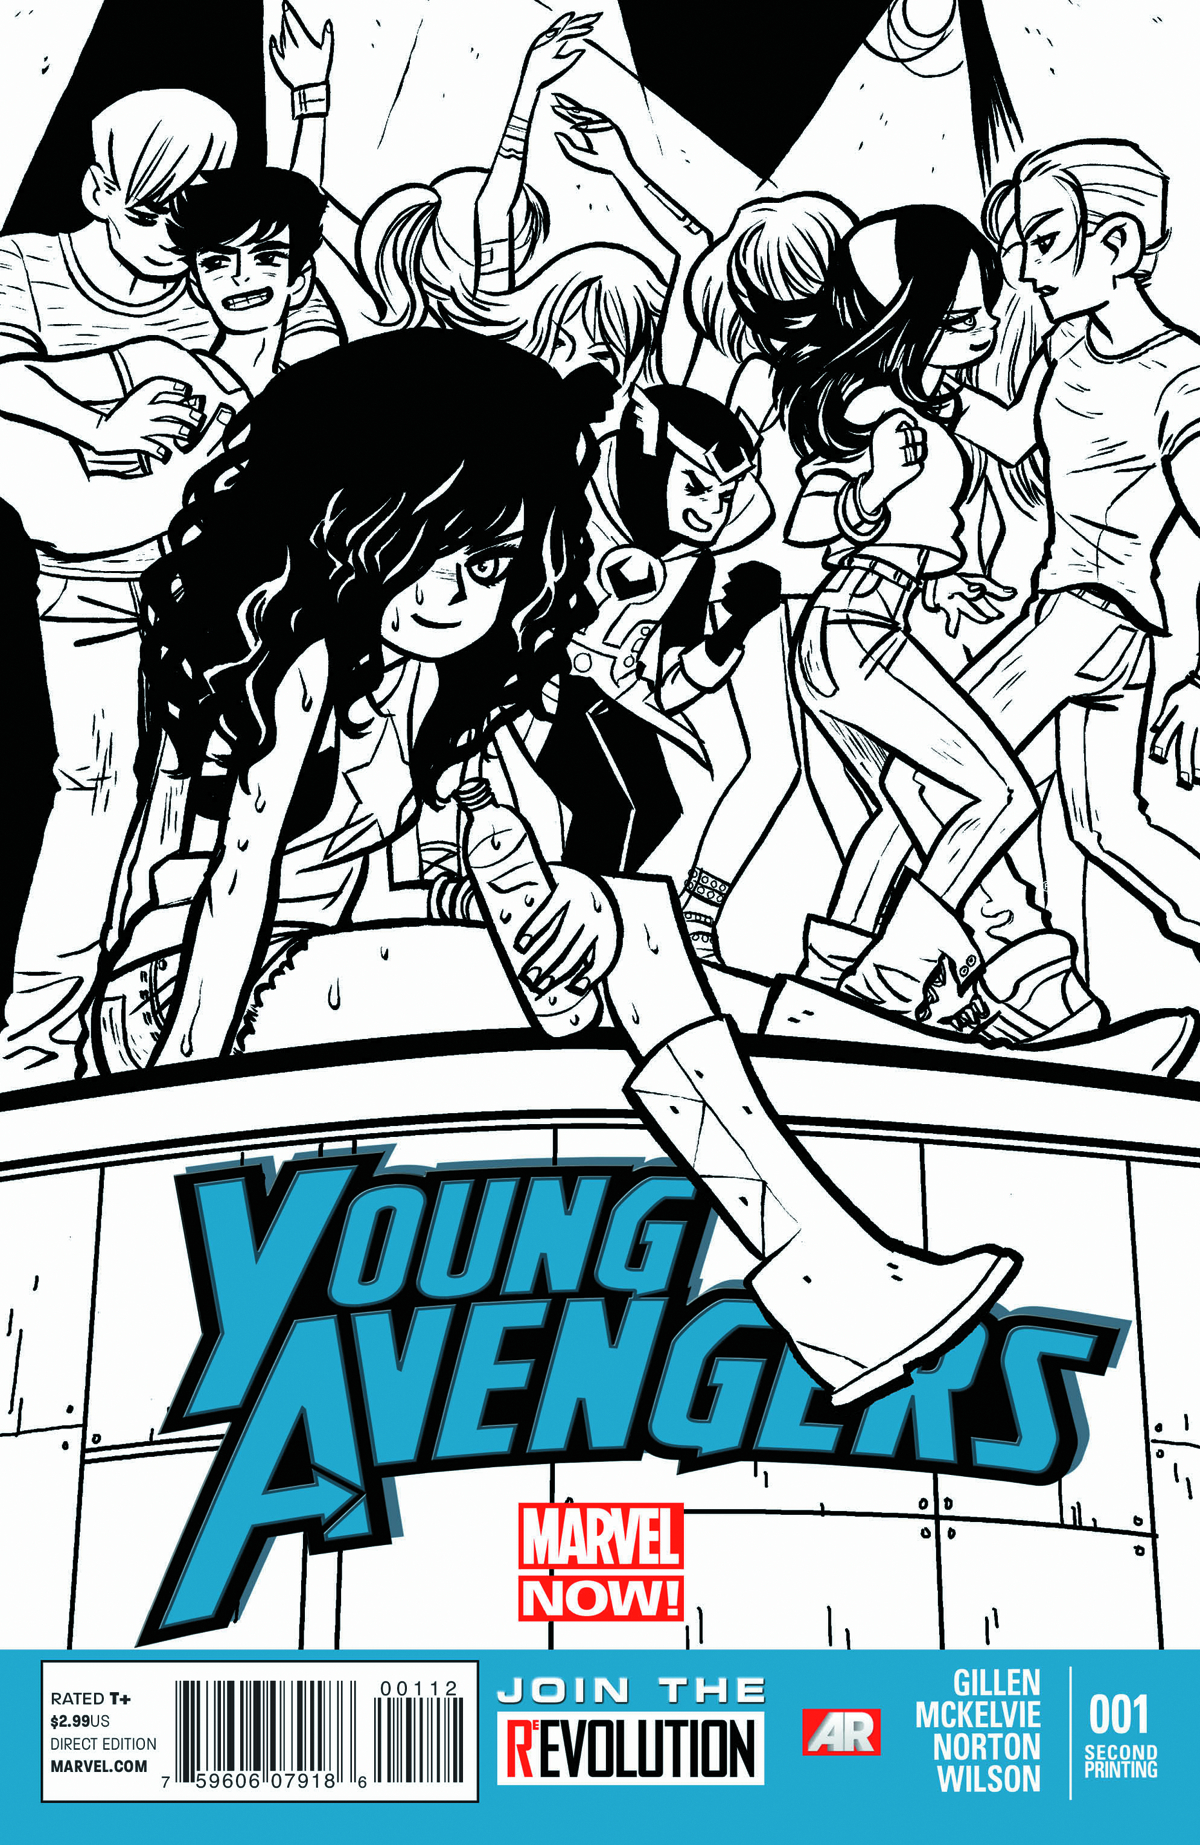 YOUNG AVENGERS #1 2ND PTG OMALLEY SKETCH VAR NOW